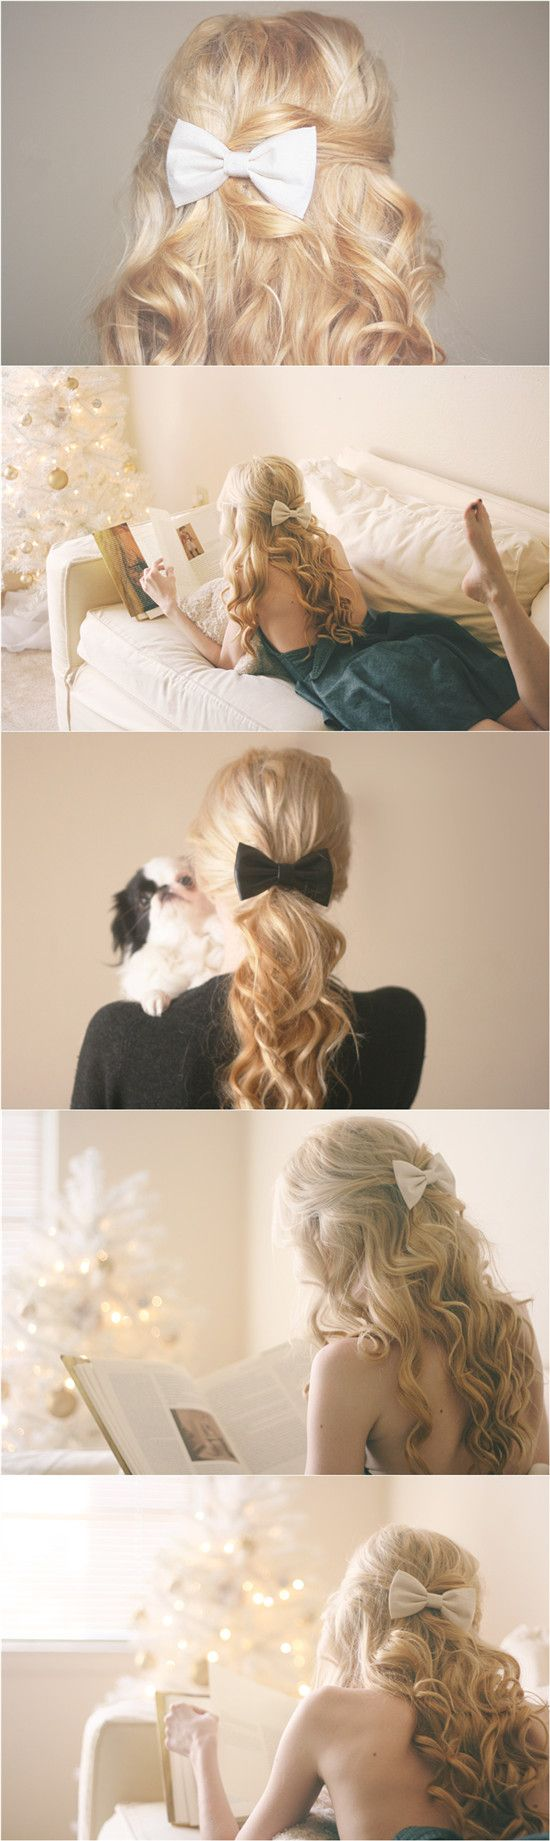 romantic hair bow for wedding 2014 by wavy blonde 20 inch real and great hair extensions for thin hair